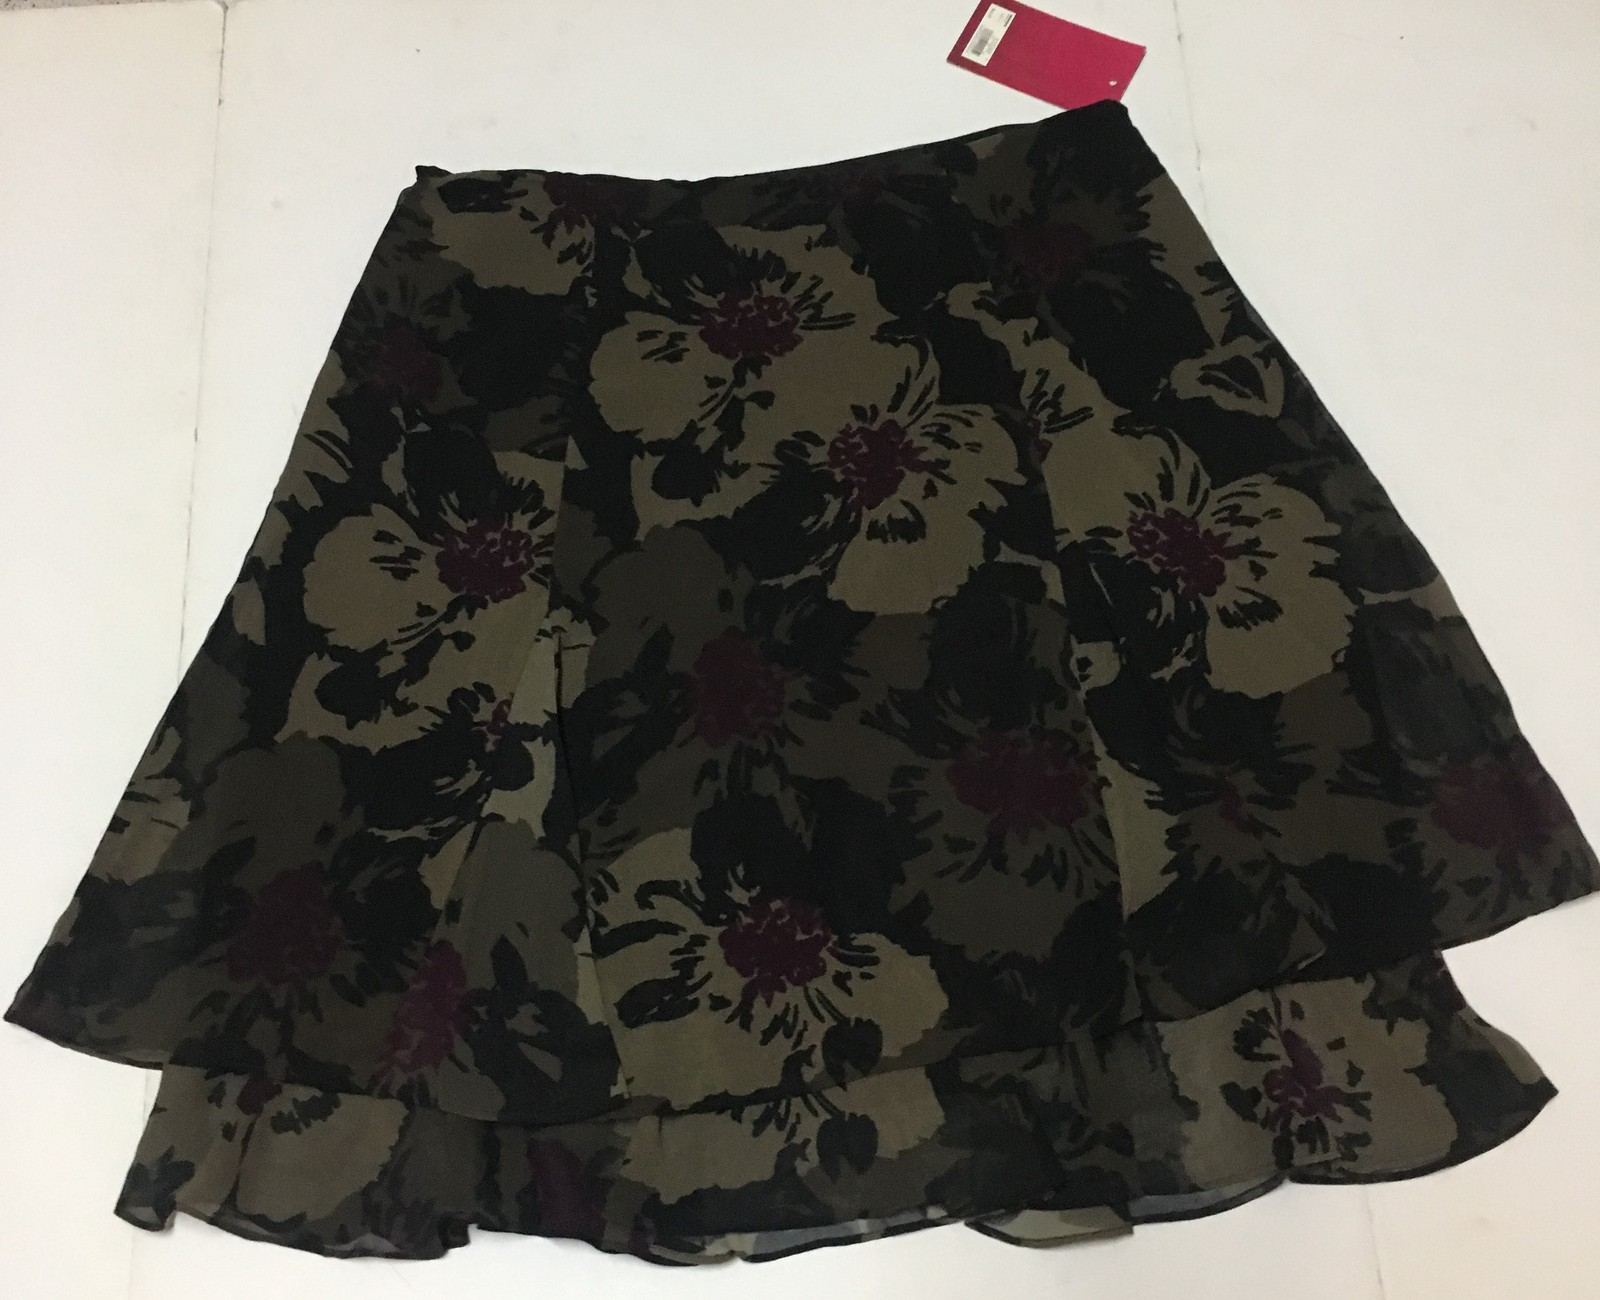 212 Collection Floral Layered Skirt SZ 14 Multi-Color